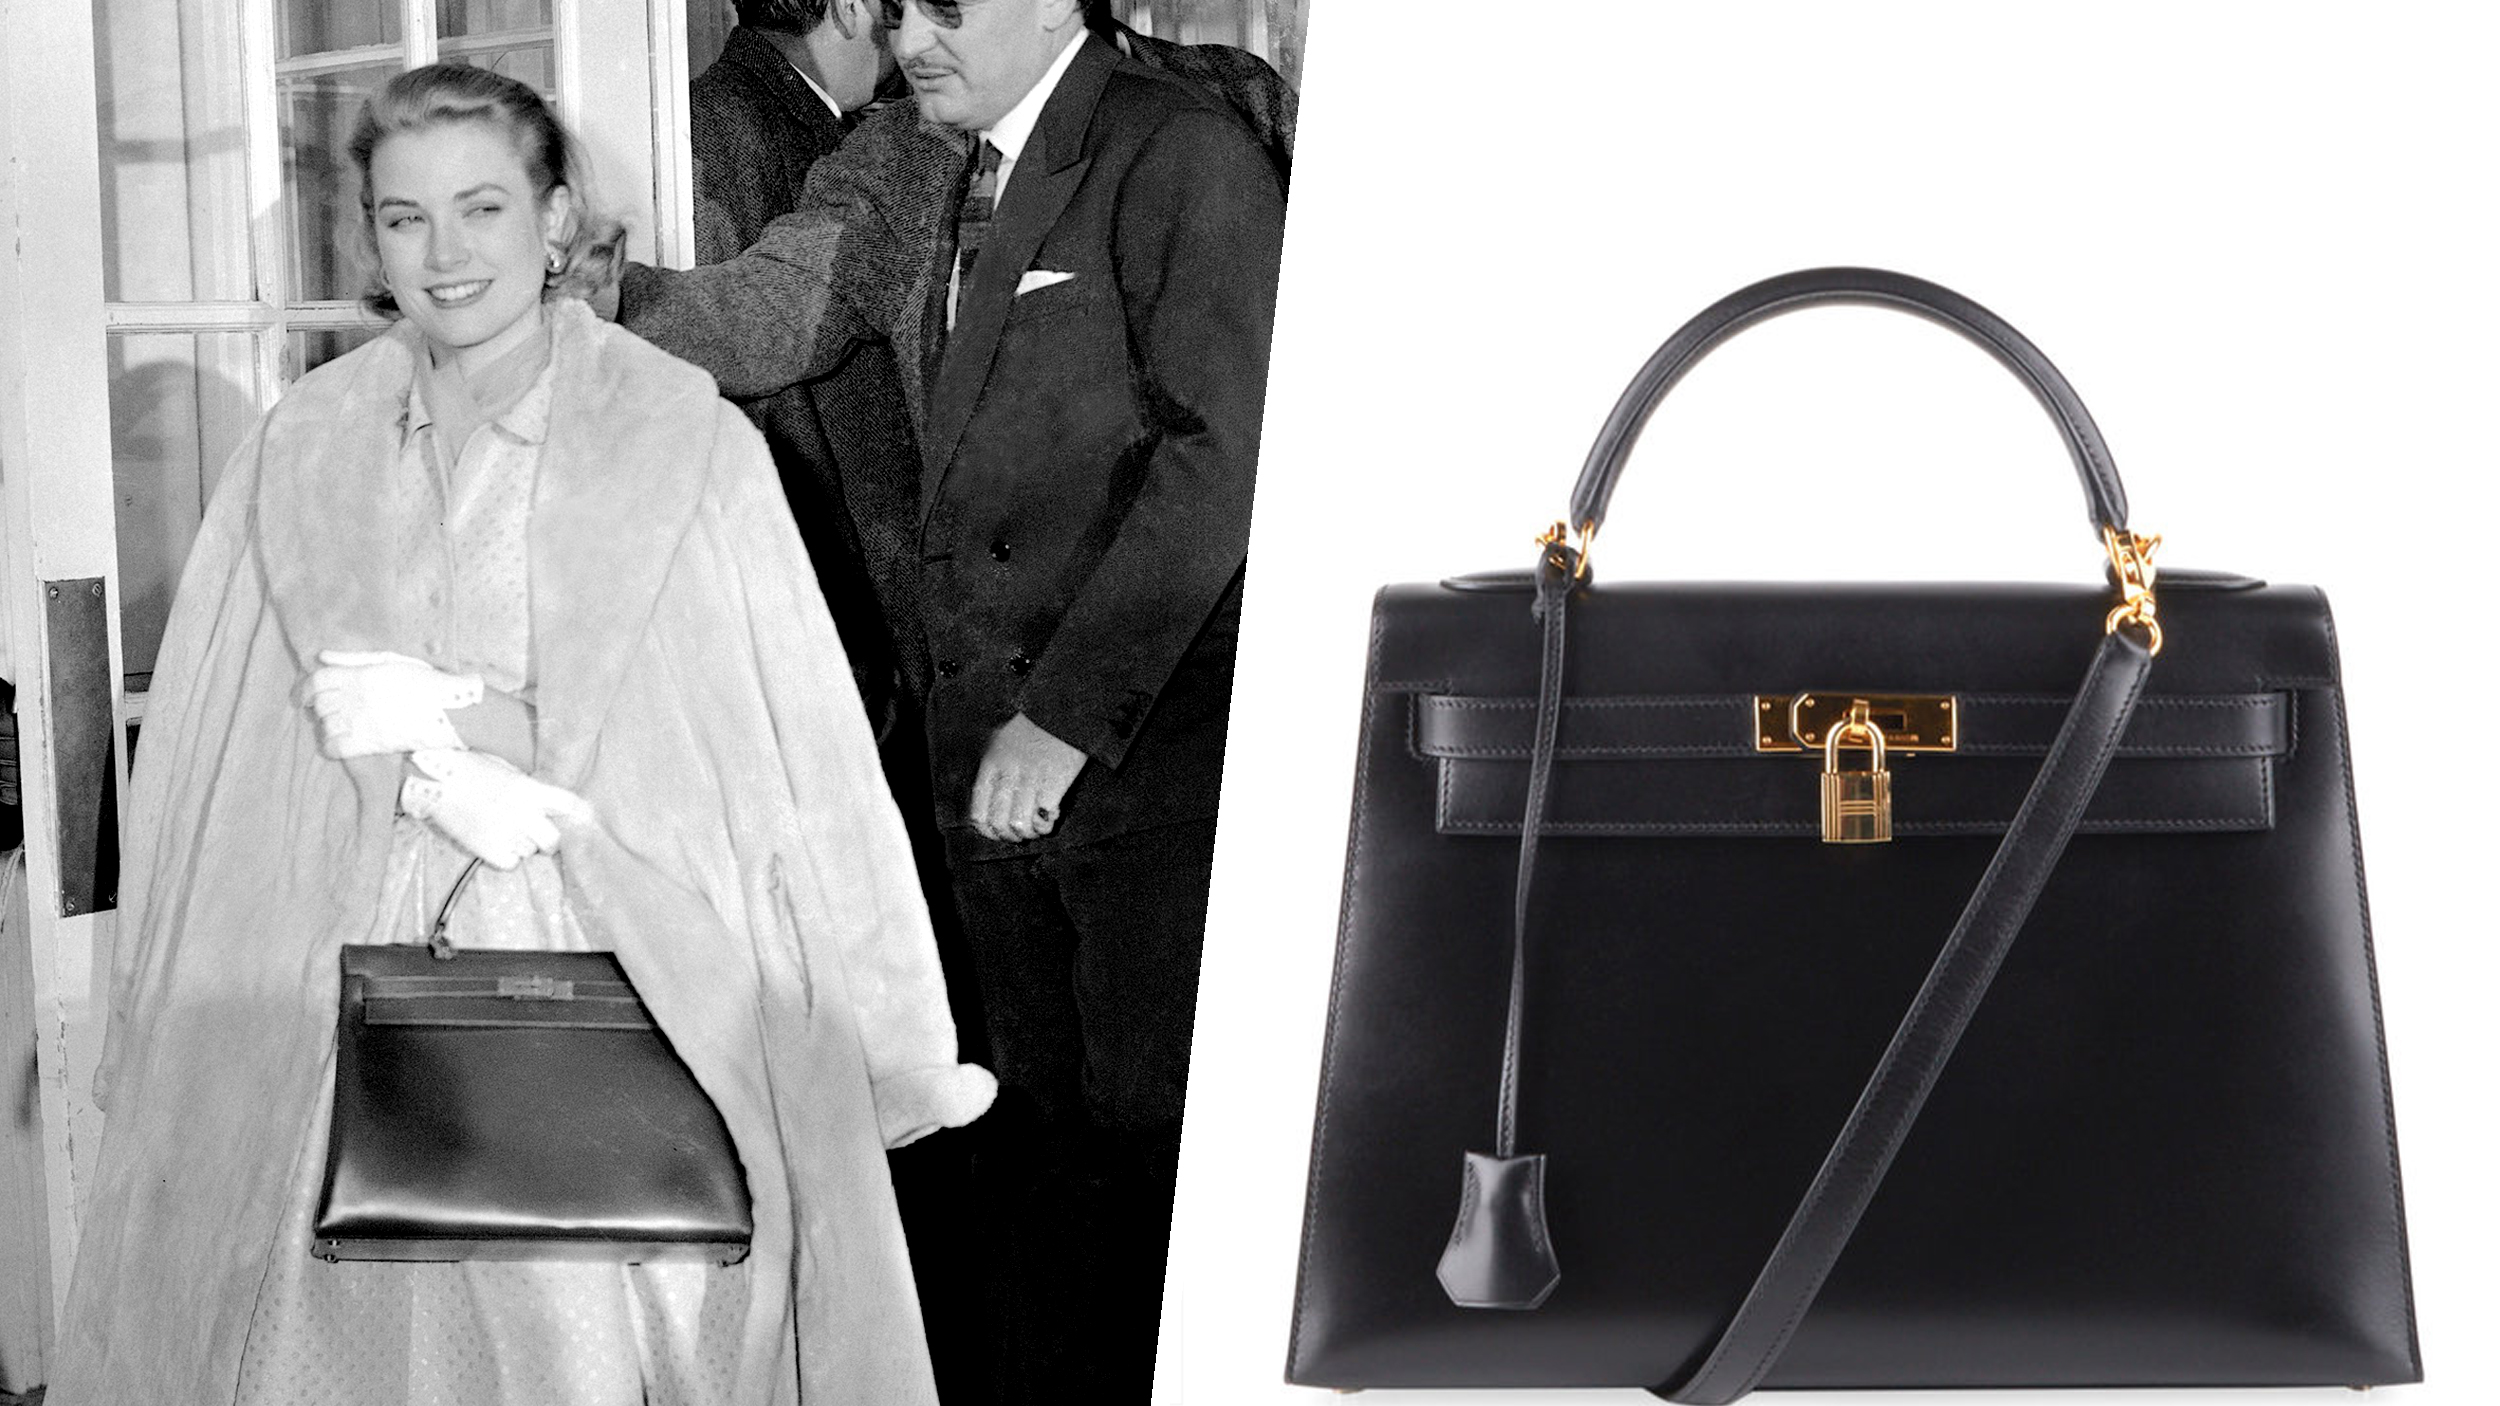 8af5f4d8762c Iconic handbags and the women who inspired them